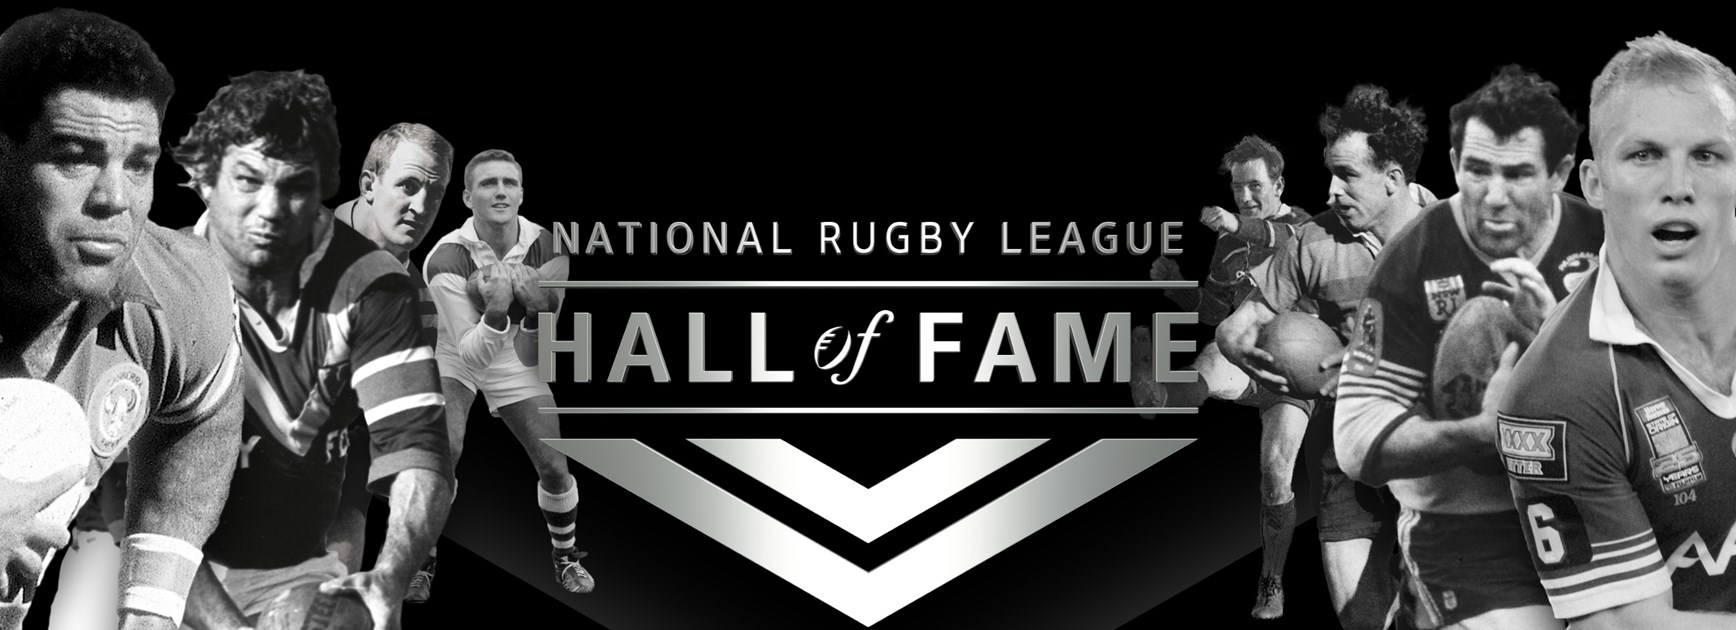 NRL unveils new Immortals and Hall of Fame programs